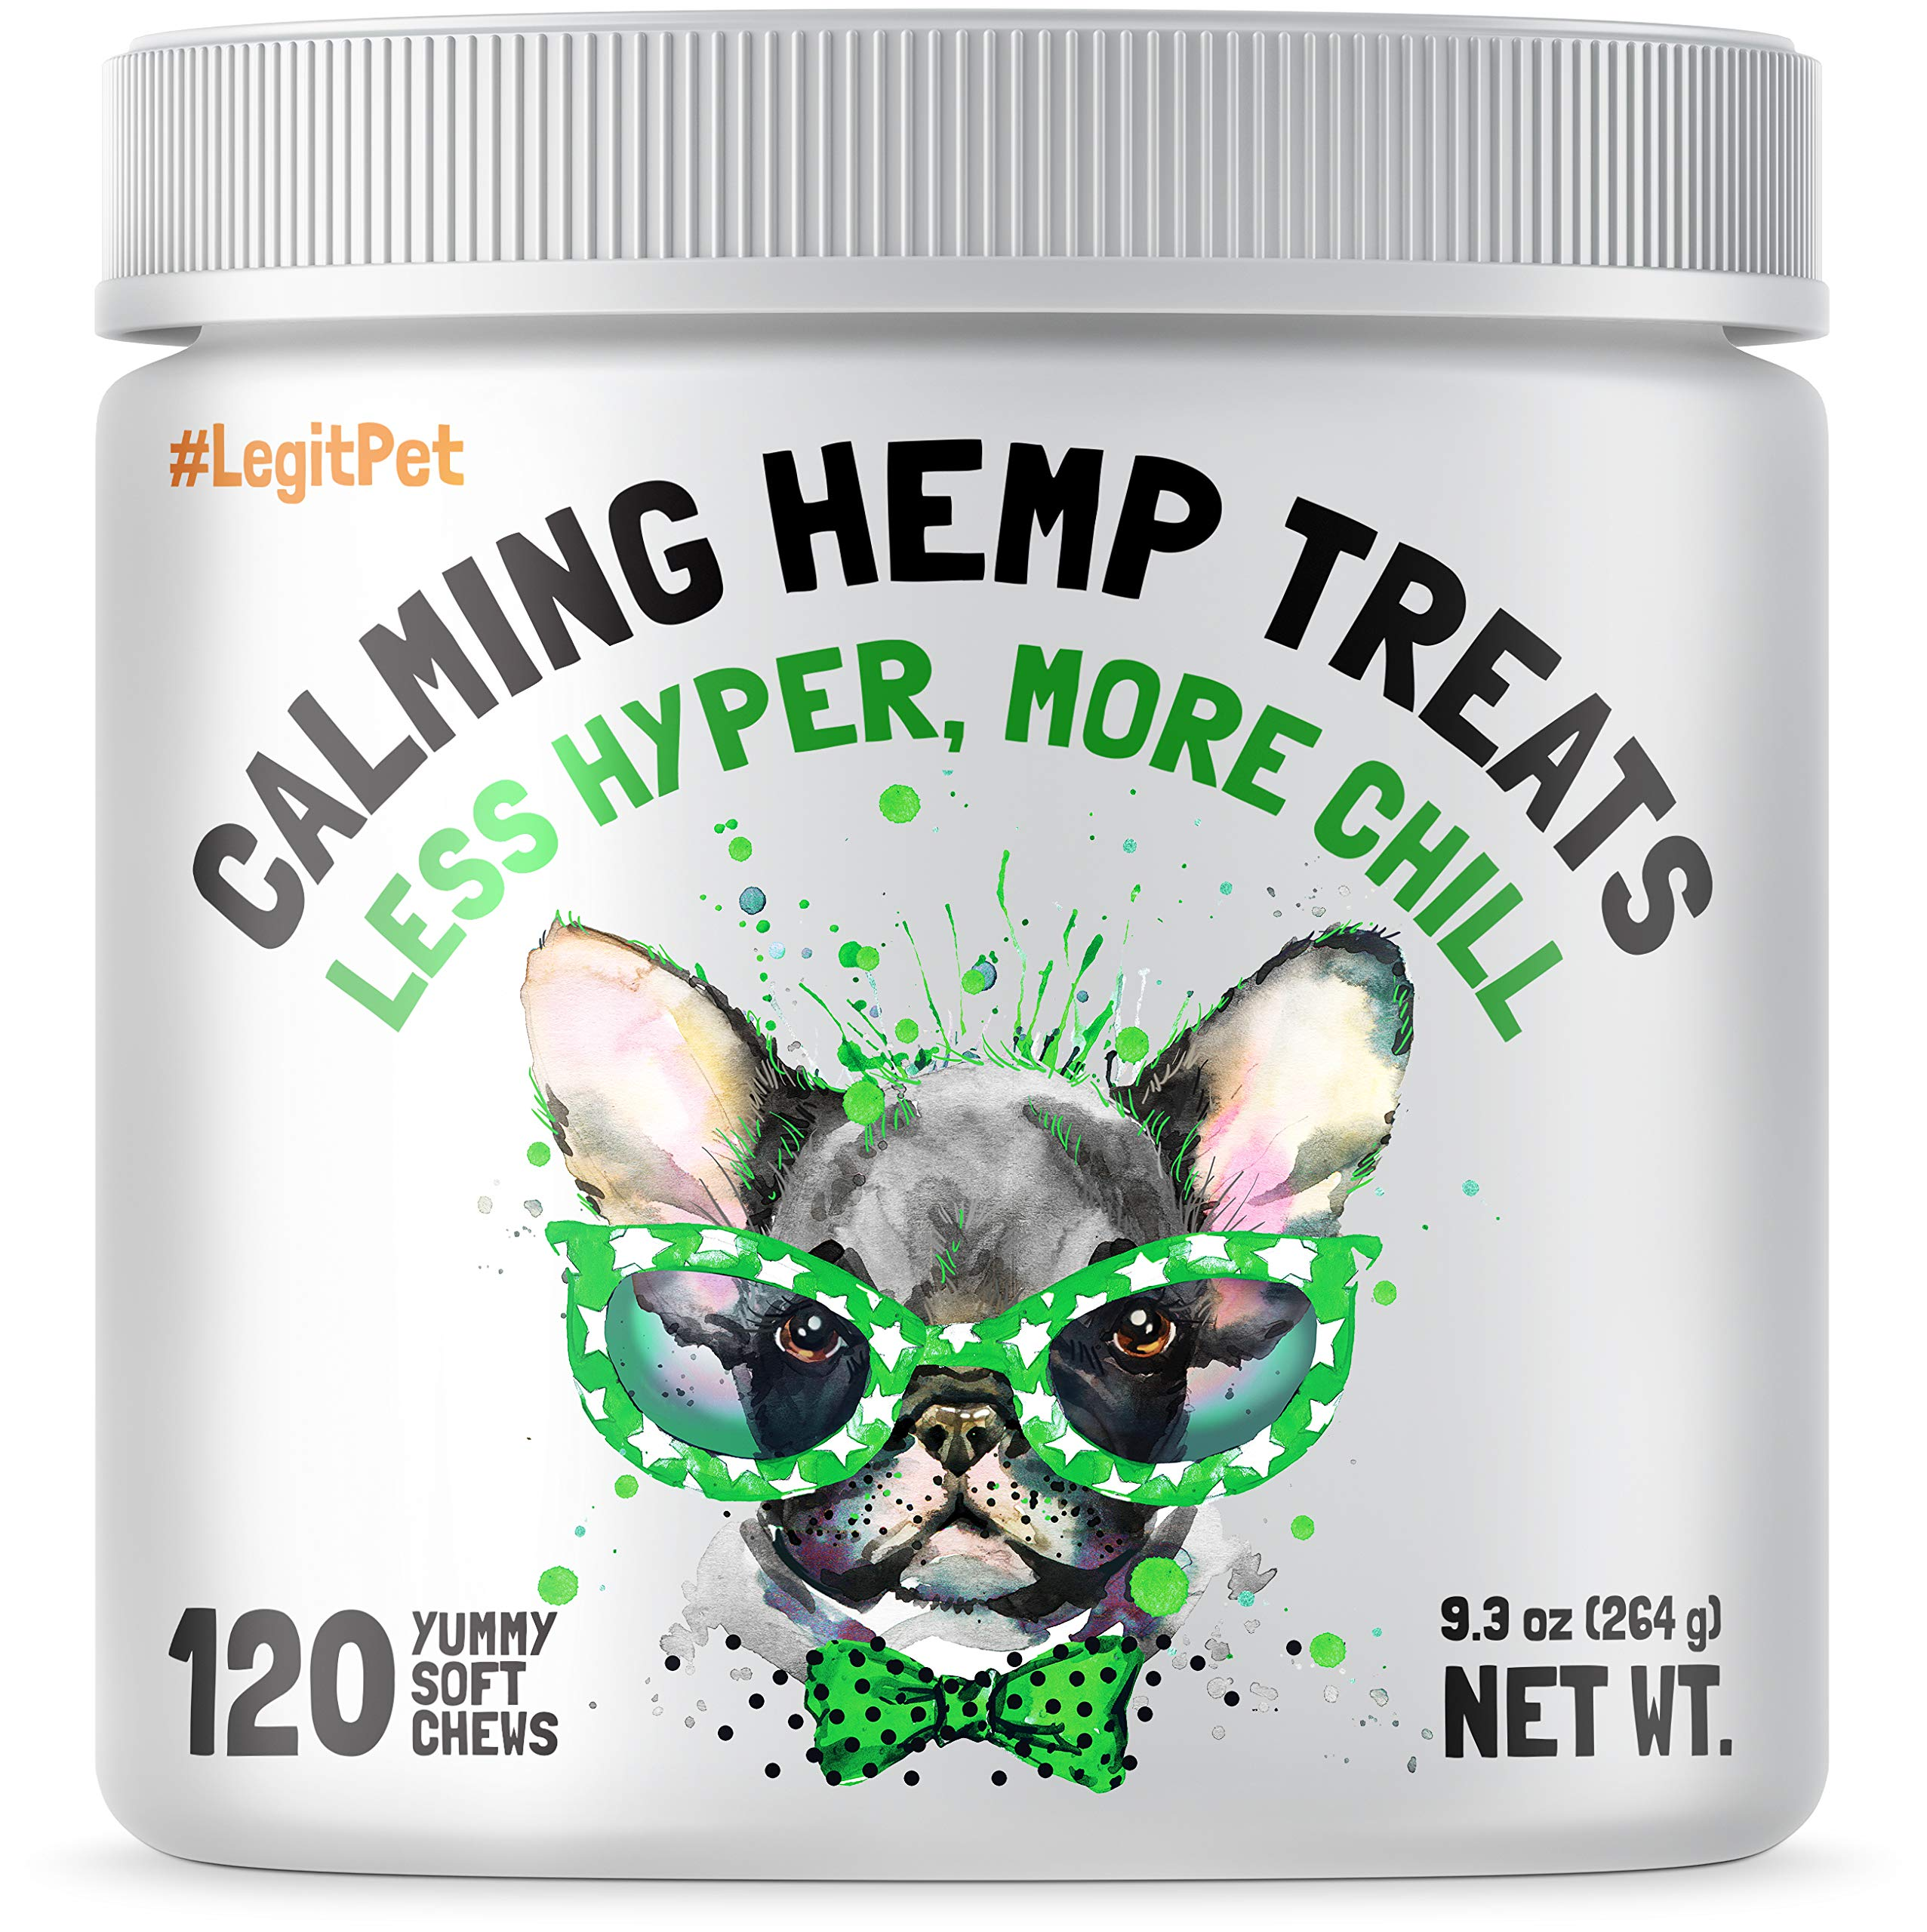 Calming Hemp Treats For Dogs - Made in USA with Organic Hemp - Dog Anxiety Relief - Natural Separation Aid - Helps with Barking, Chewing, Thunder, Fireworks, Aggressive behavior - 120 Soft Chews by LEGITPET